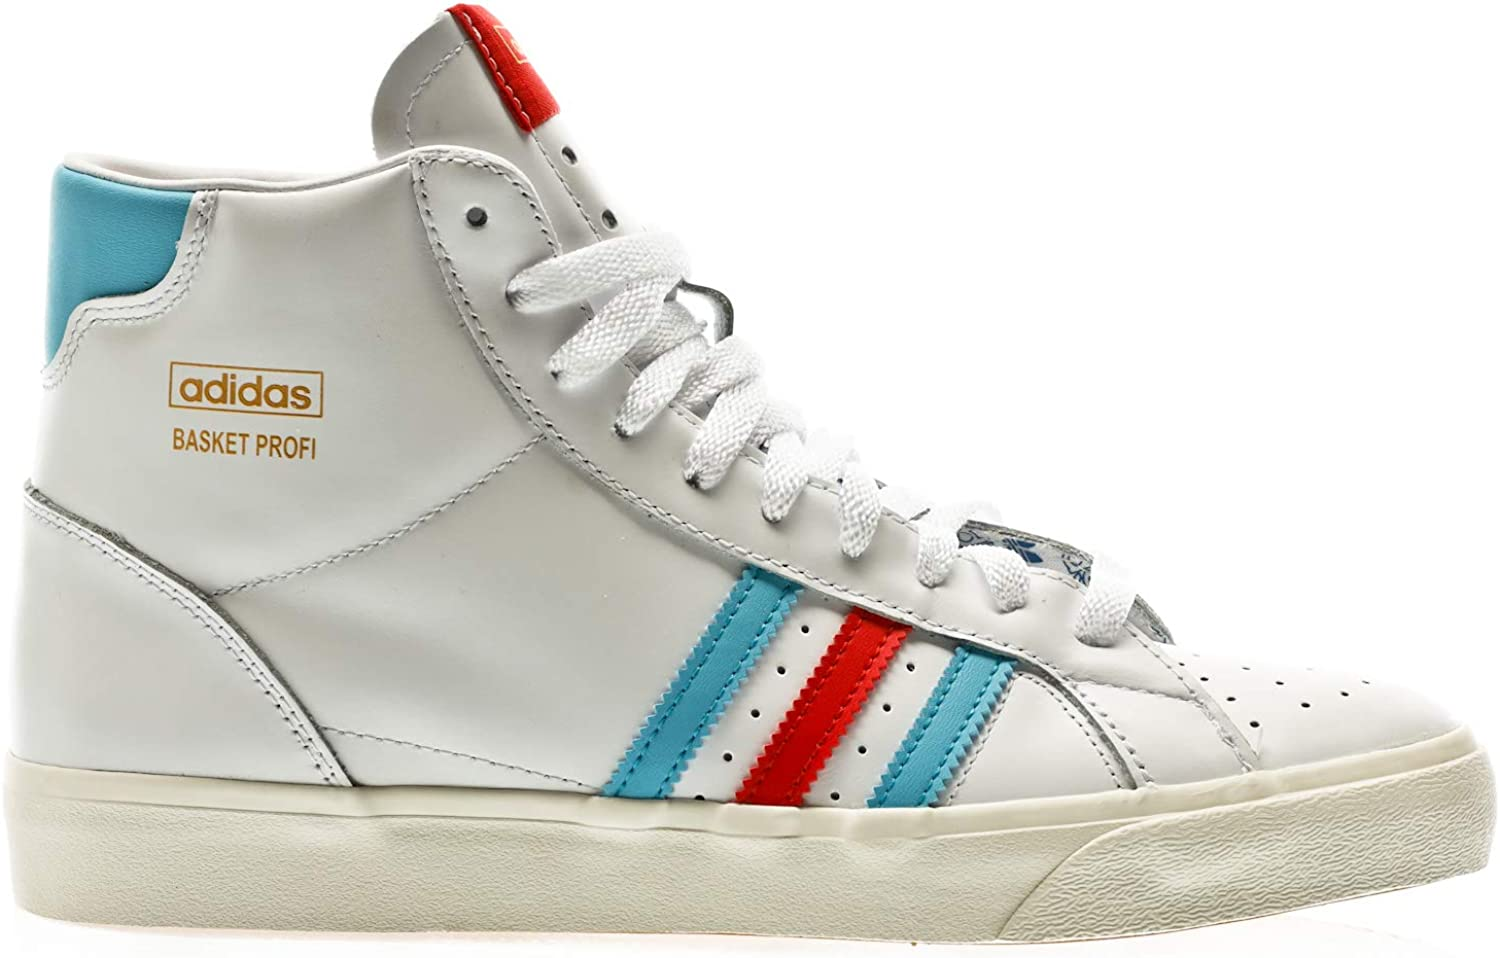 adidas Originals Basket Profi, Footwear White Red Gold